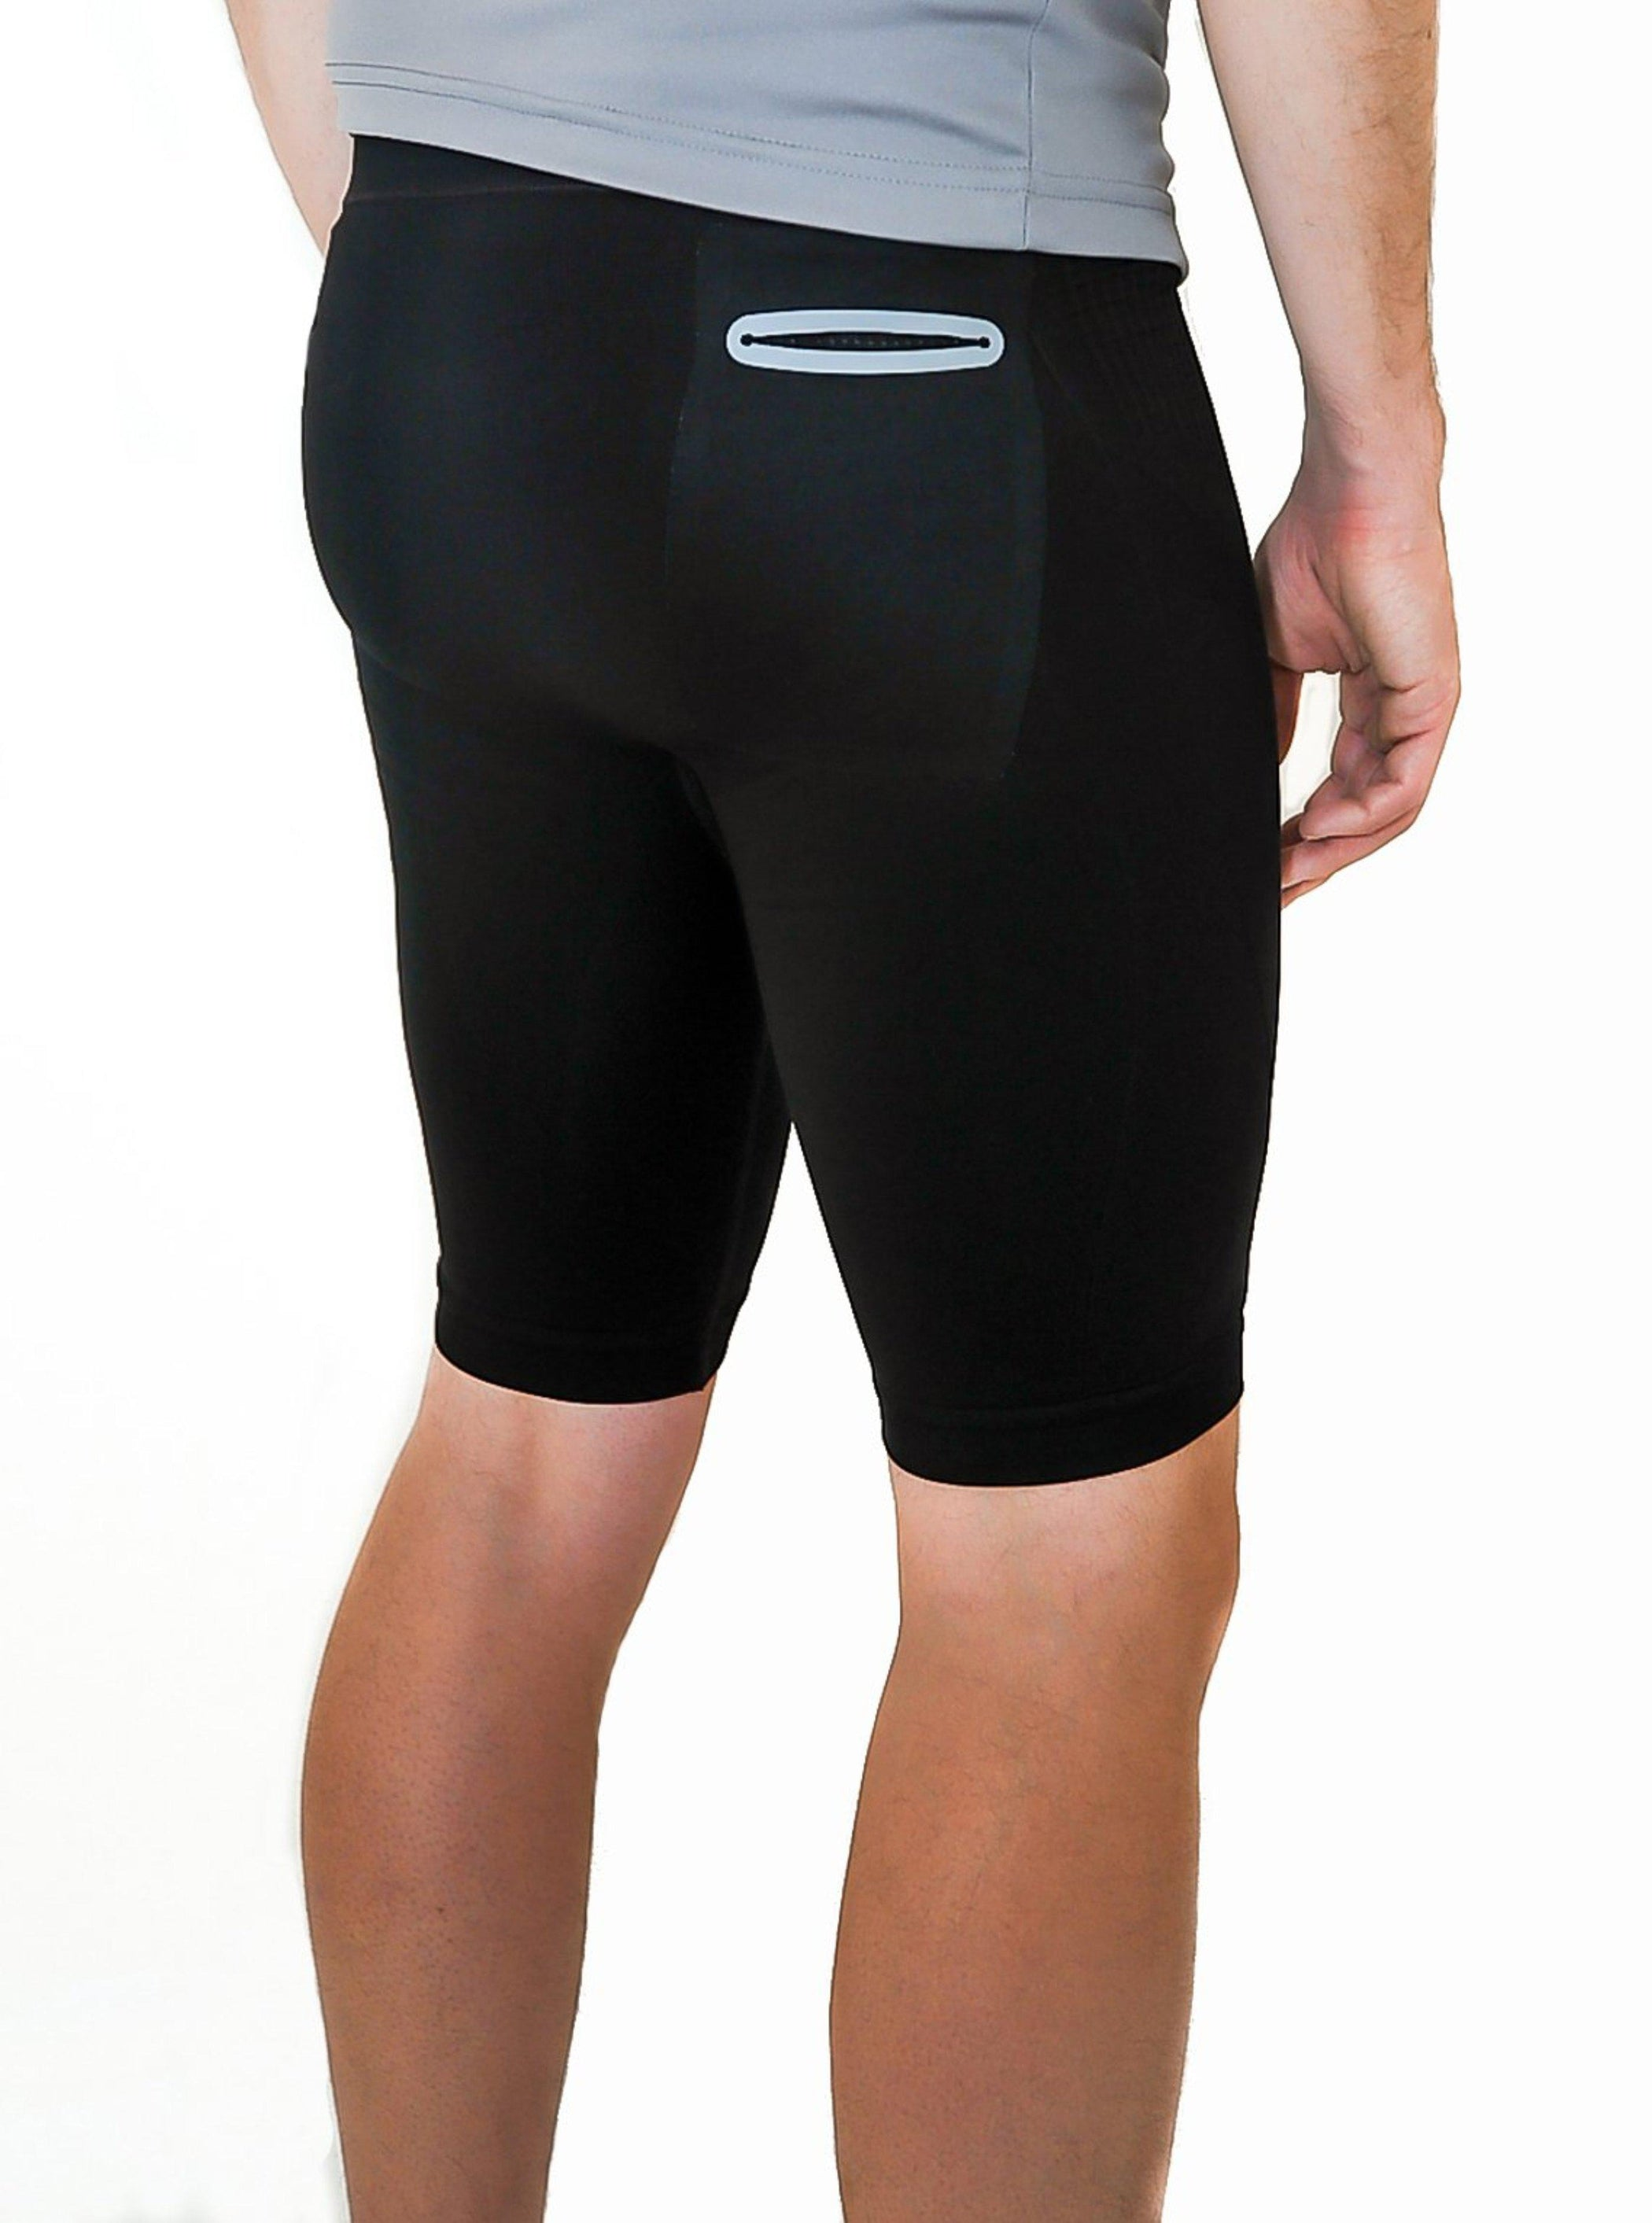 Black compression shorts with patented fully seamless front, pockets and 9 inch inseam. Back view.